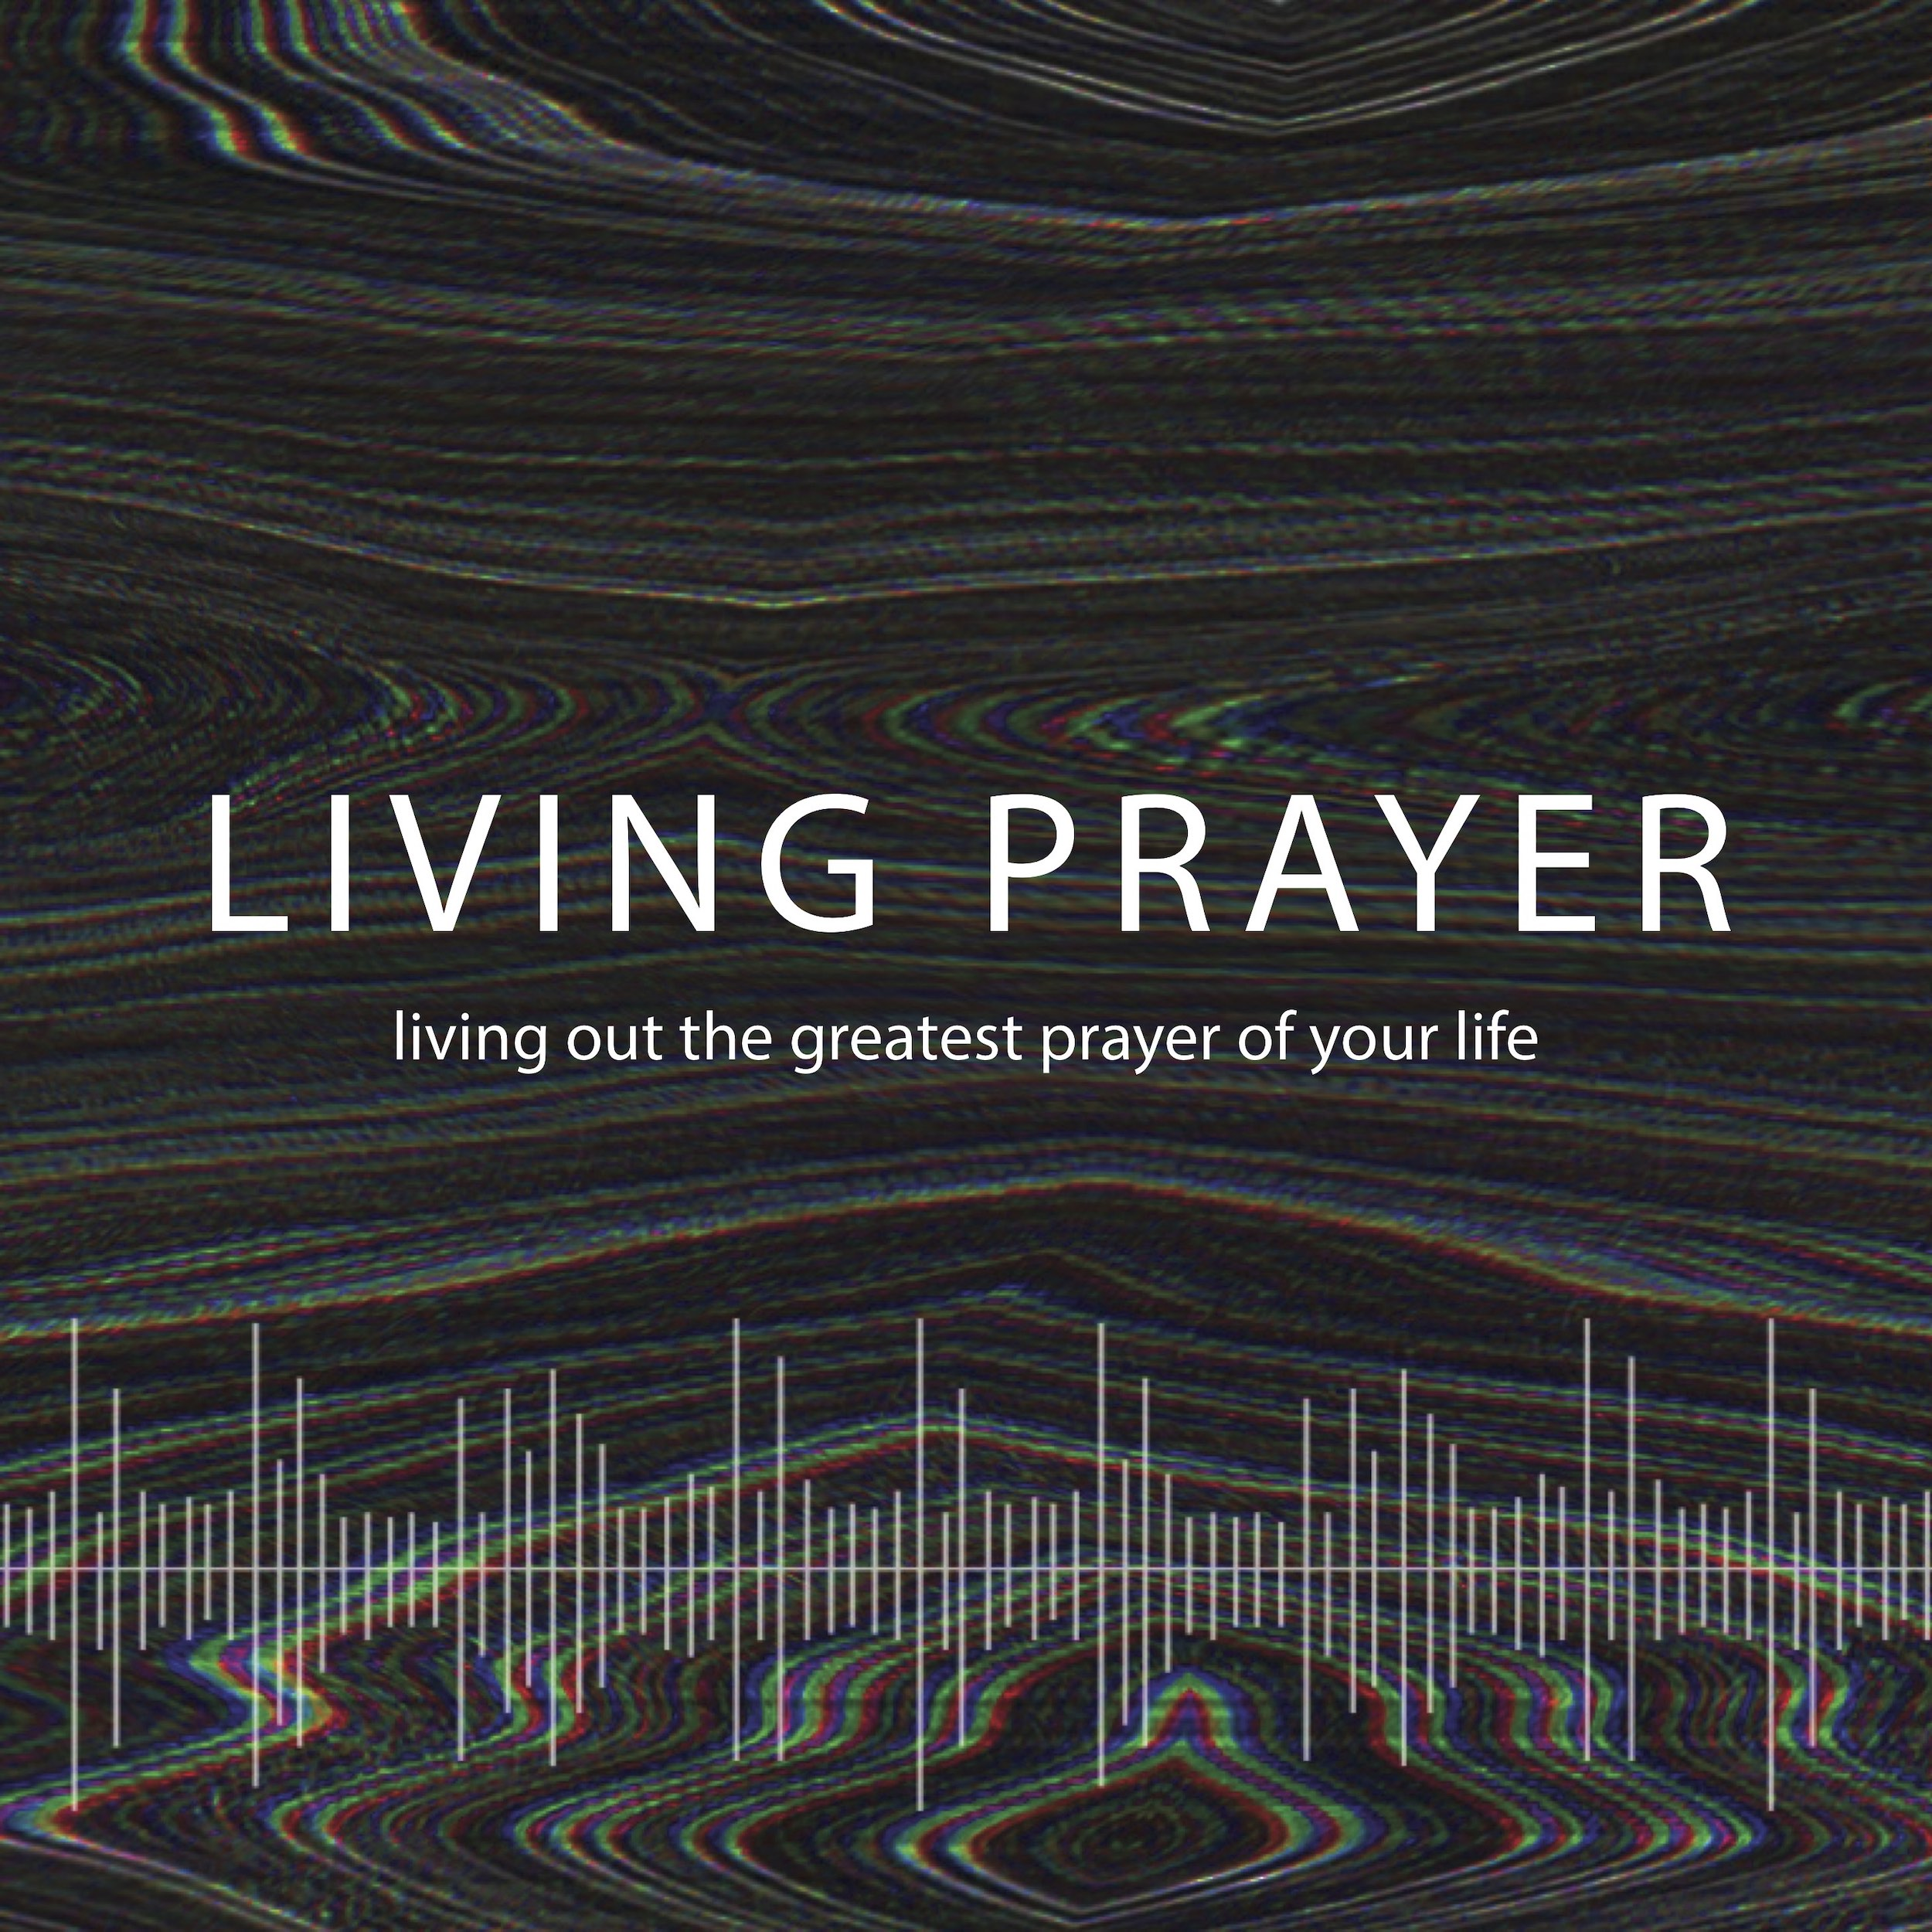 Living Prayer - The Hallowing Difference - 28 April 2019